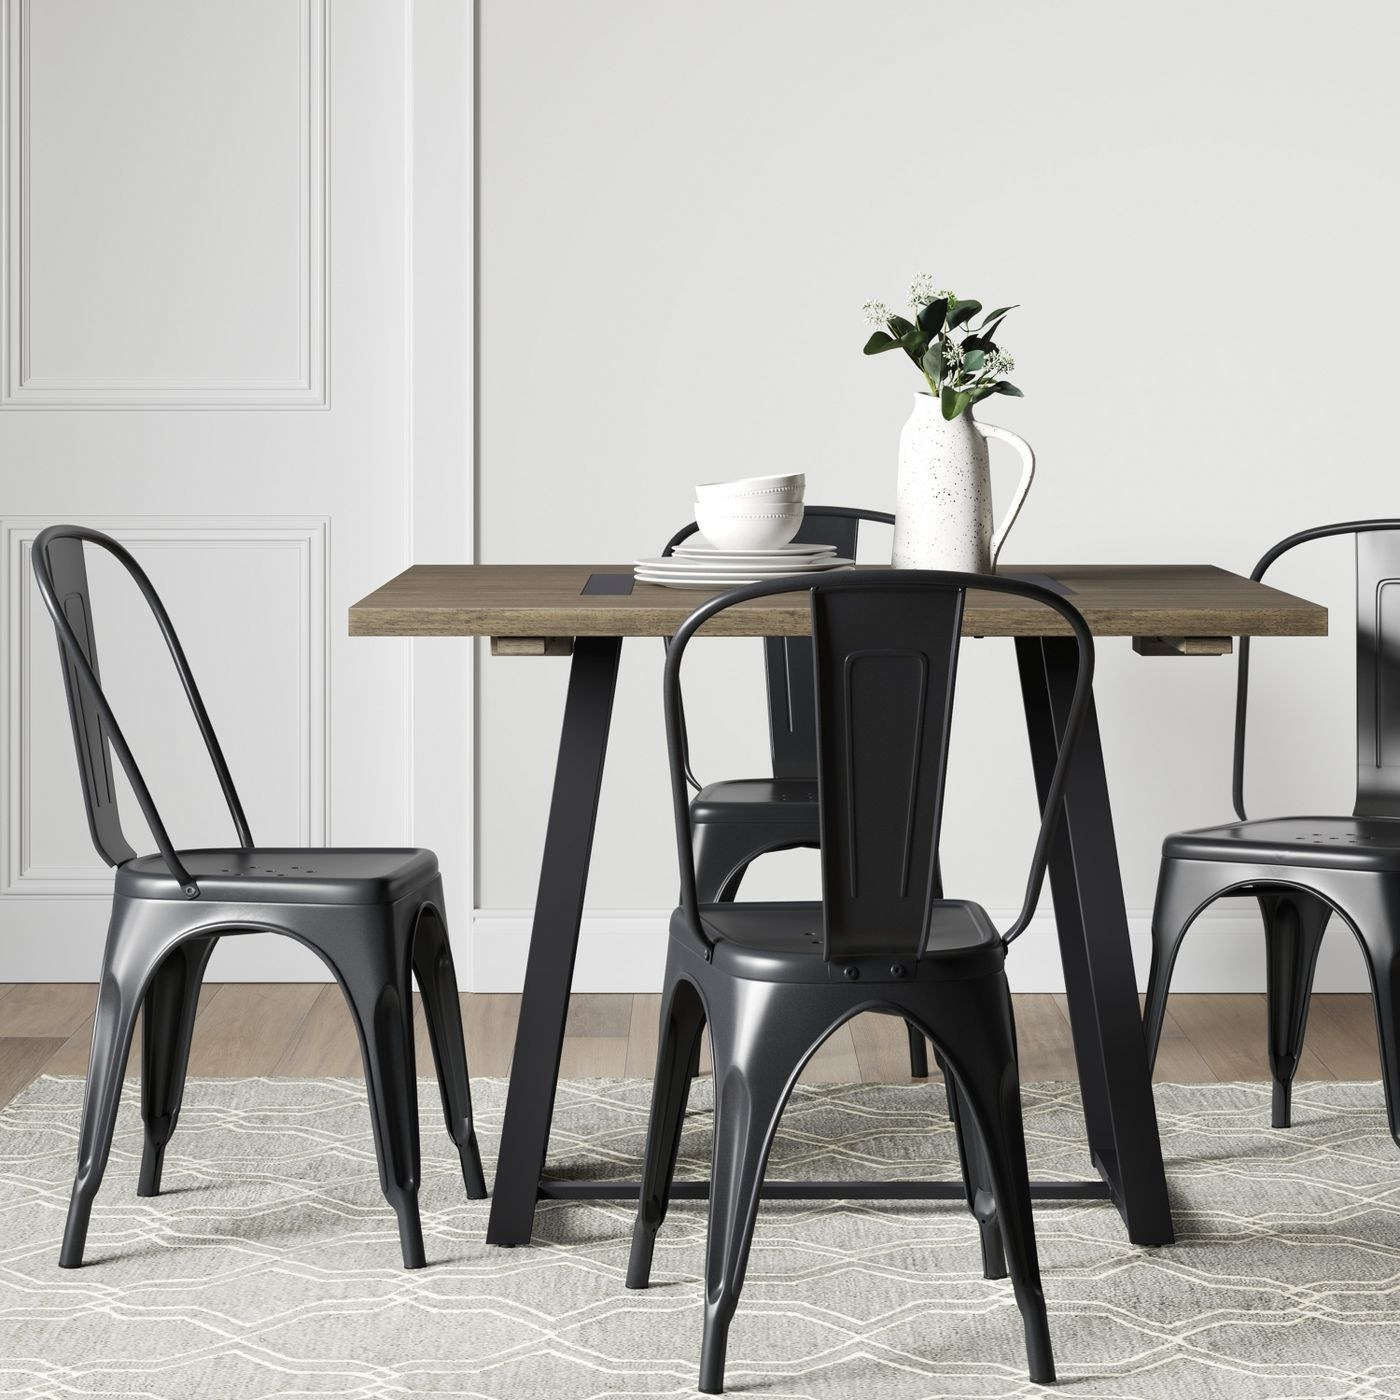 A brown drop leaf dining table with a black metal base